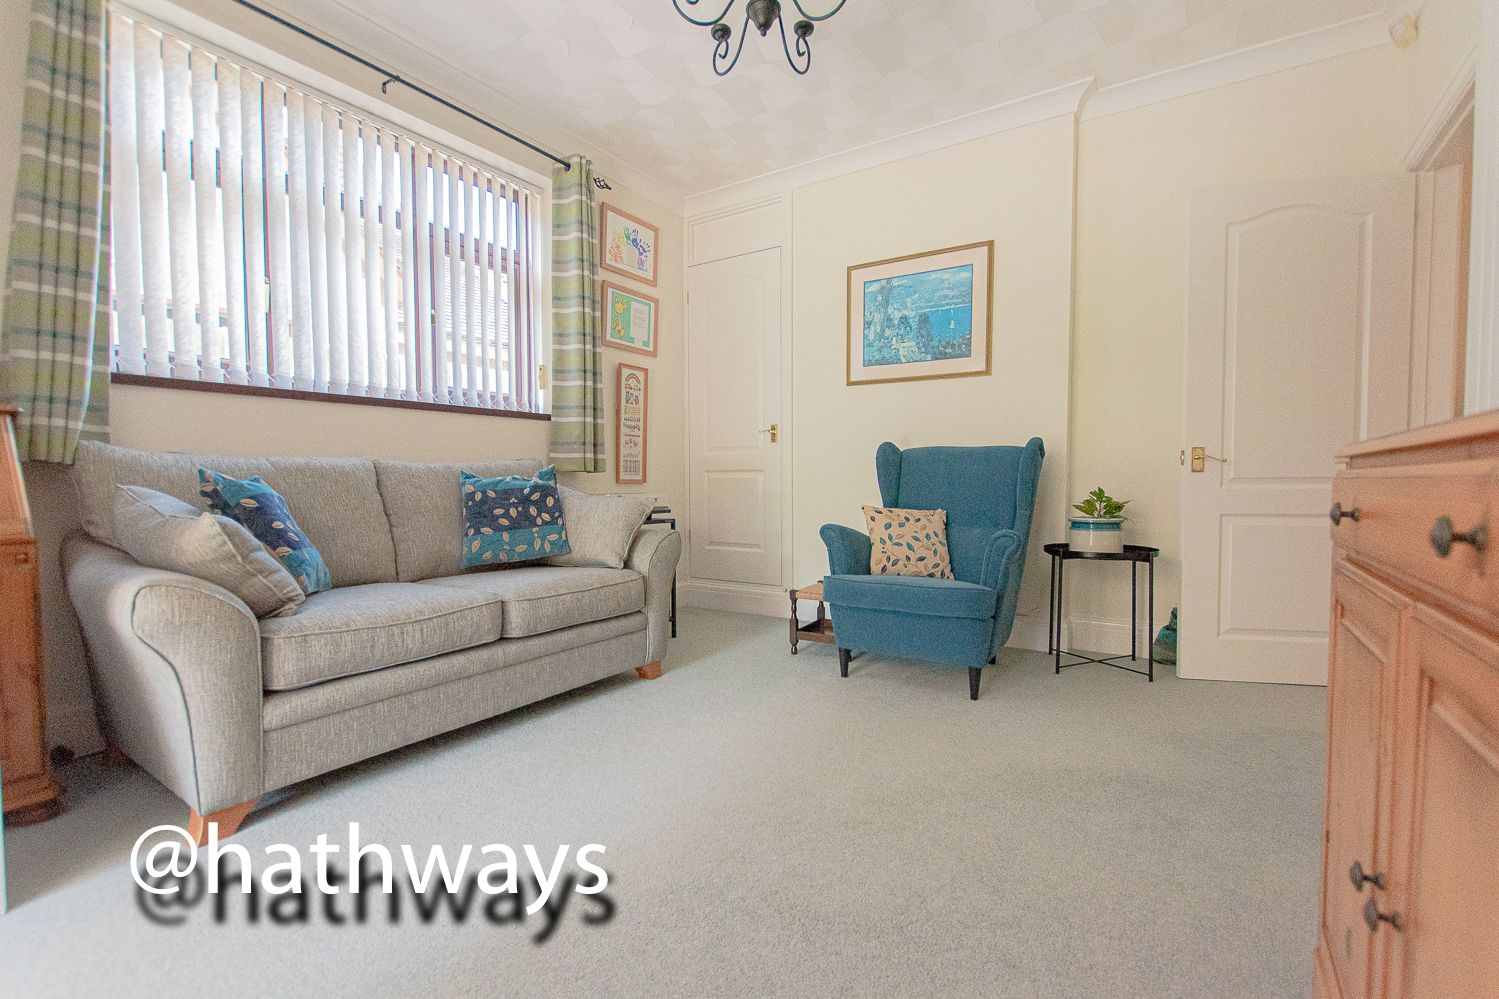 4 bed house for sale in Ashford Close South 10